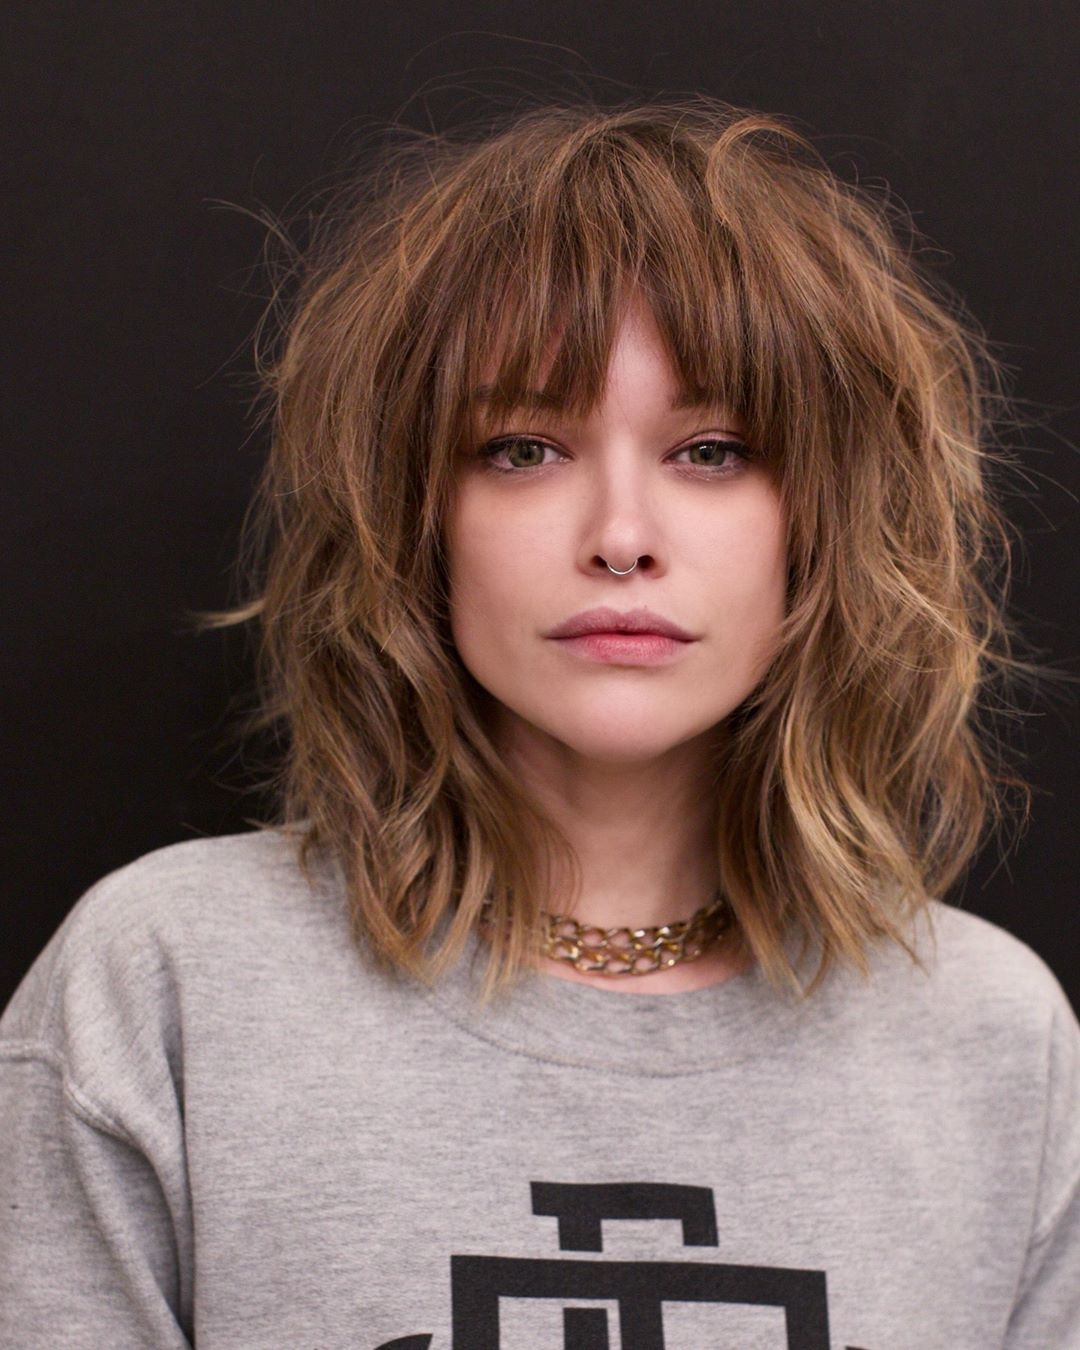 Top 6 Haircut Trends 2019, According to Stylists